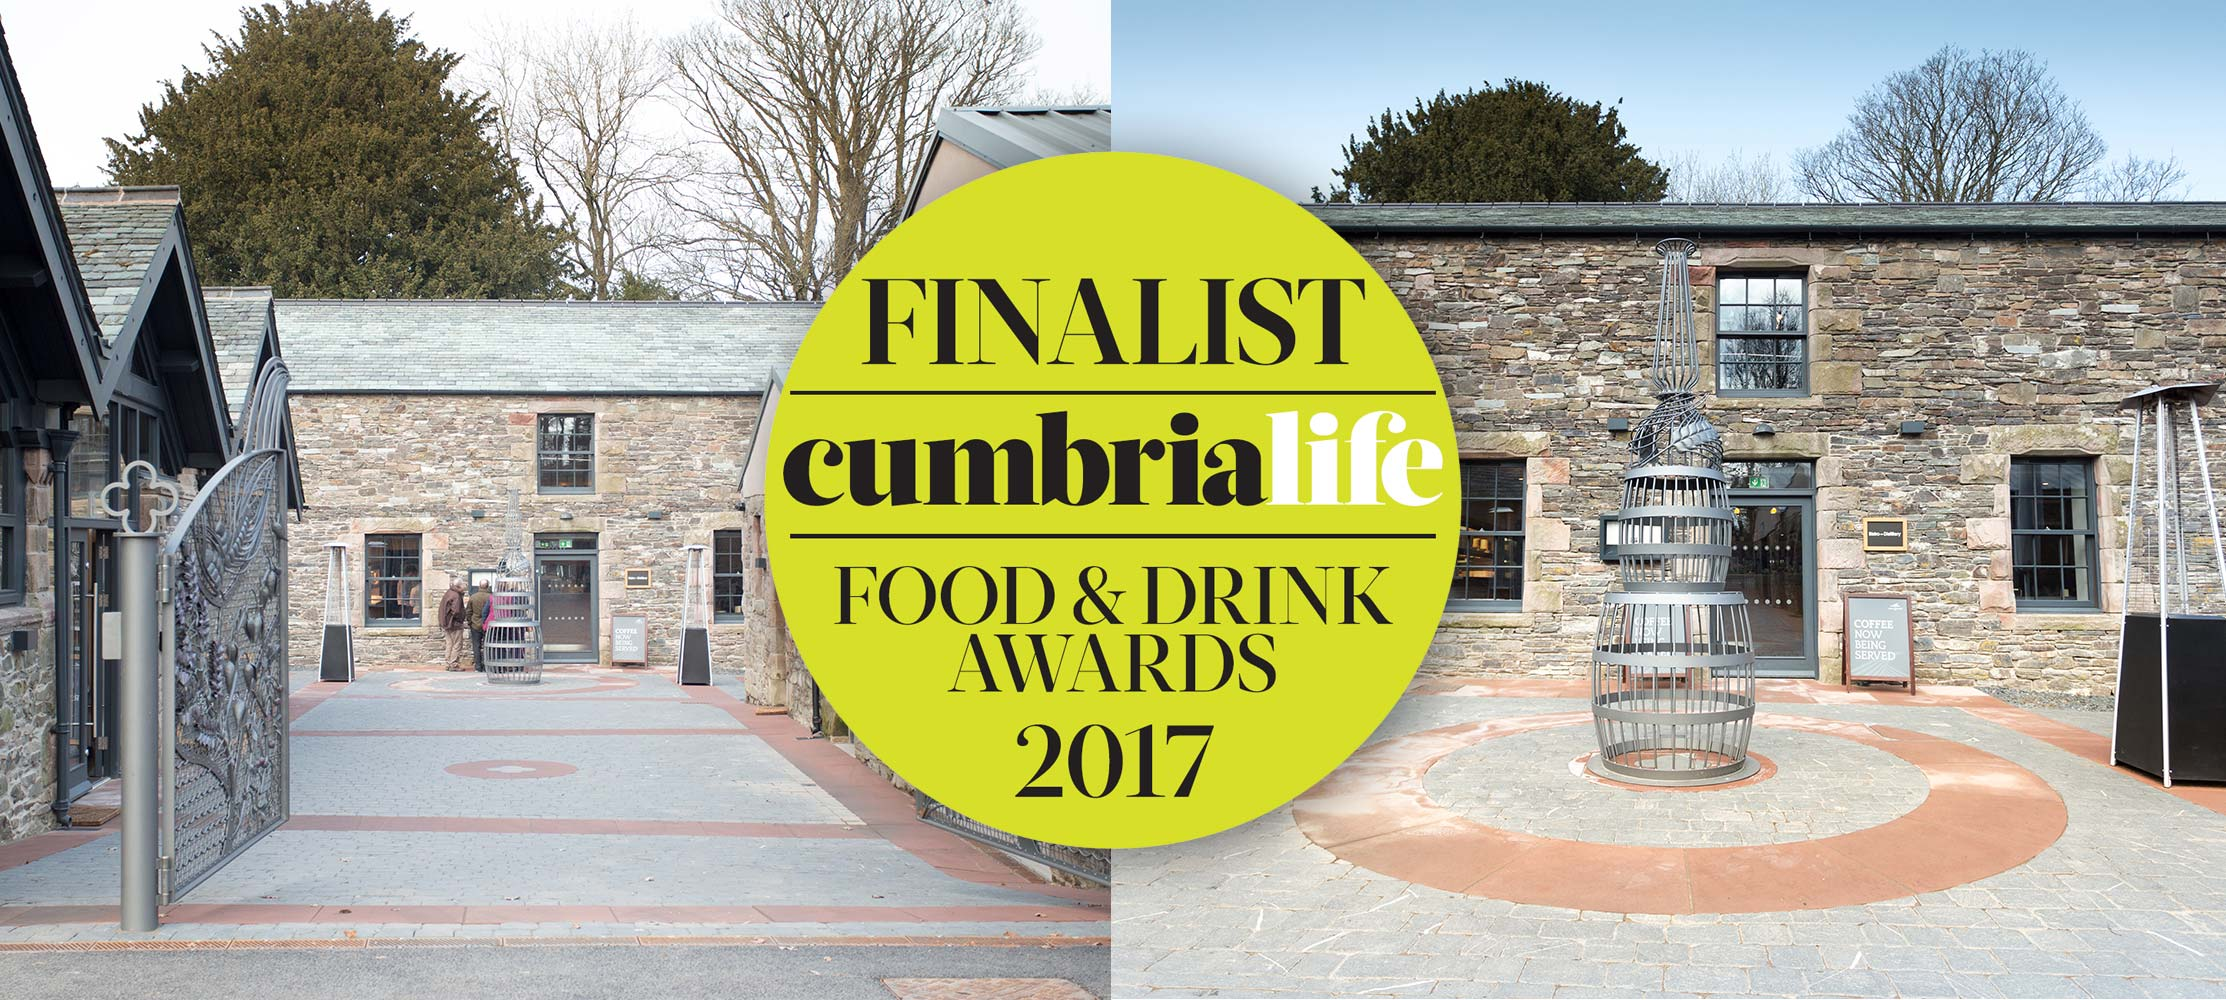 finalist-cumbria-life-graphic